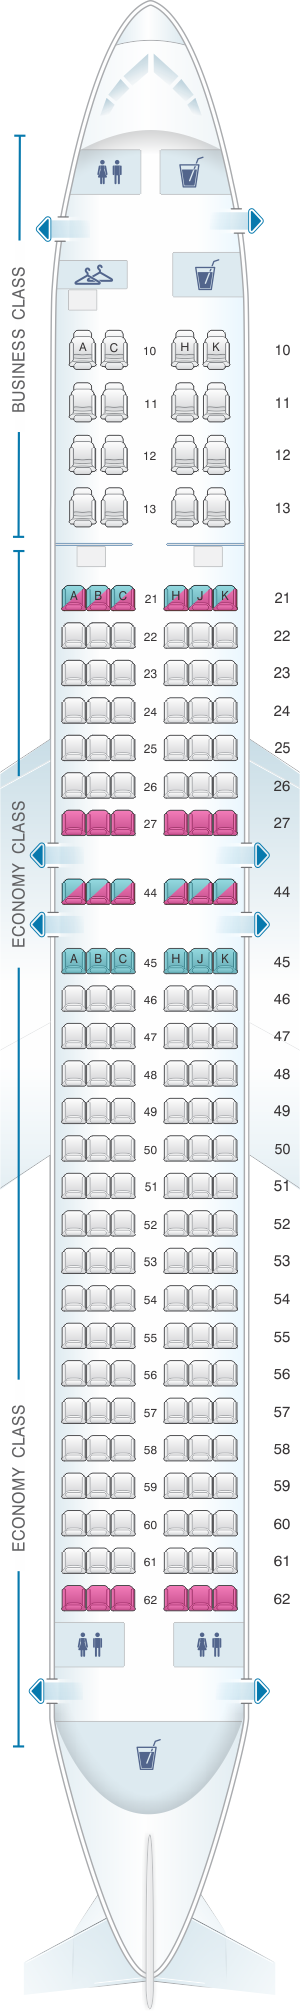 Seat map el al israel airlines boeing  er also rh in pinterest